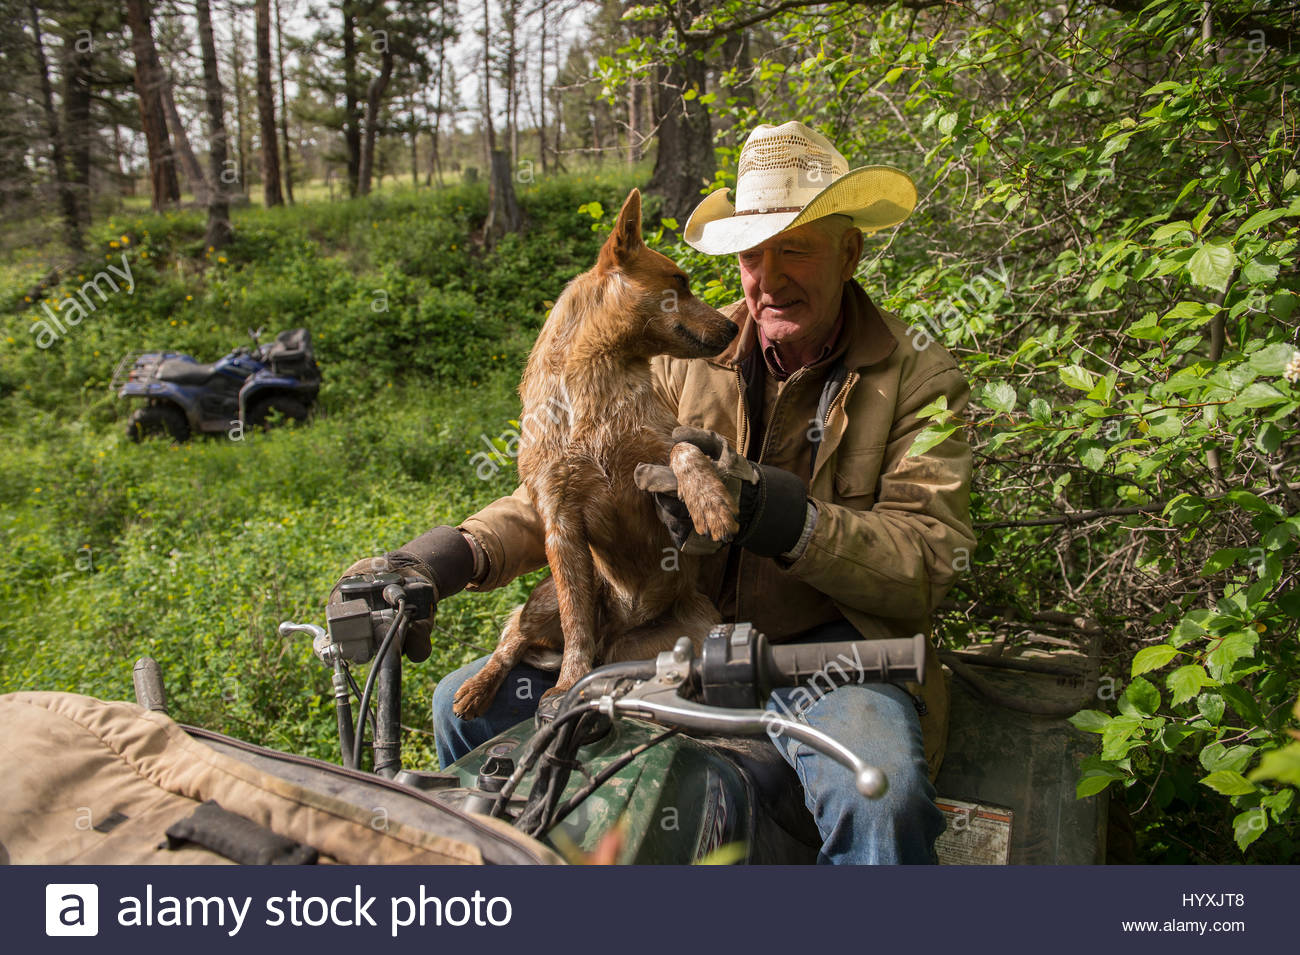 A man and his dog on an ATV, to herd cattle. - Stock Image